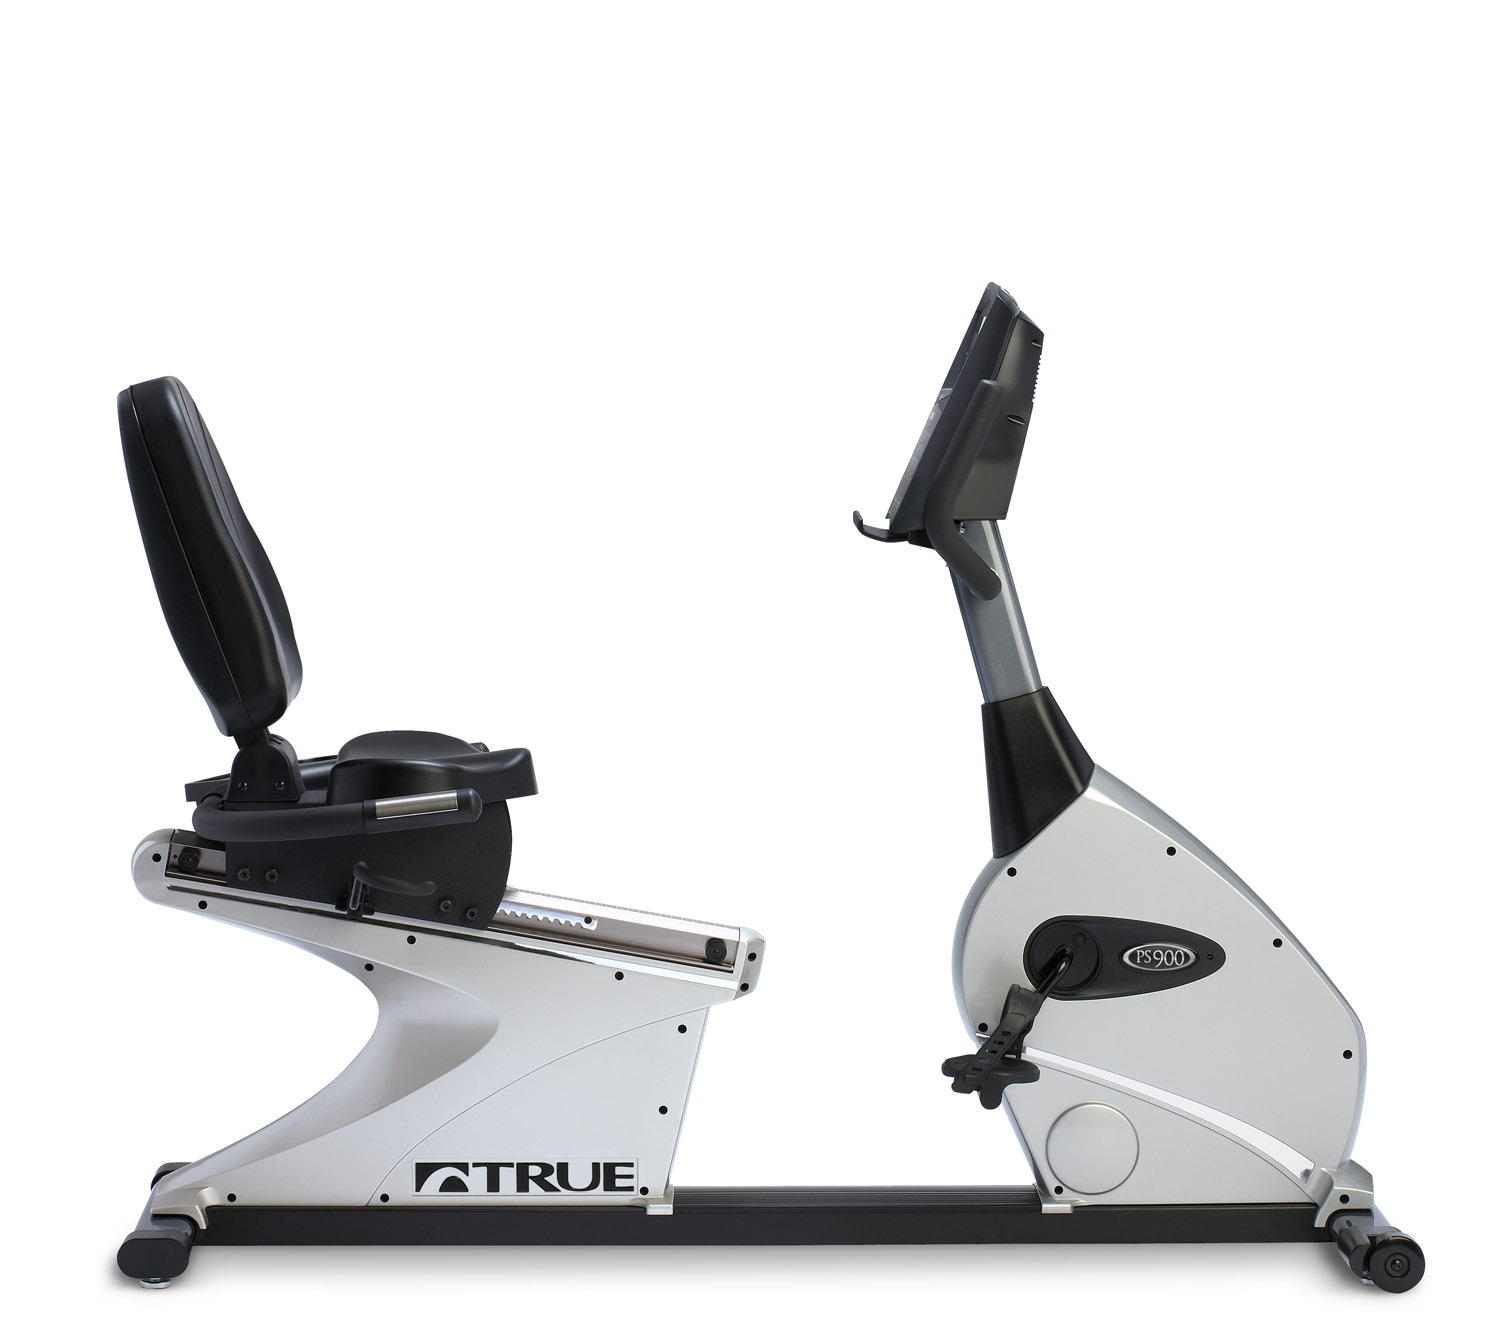 True Fitness PS900 Recumebent Bike